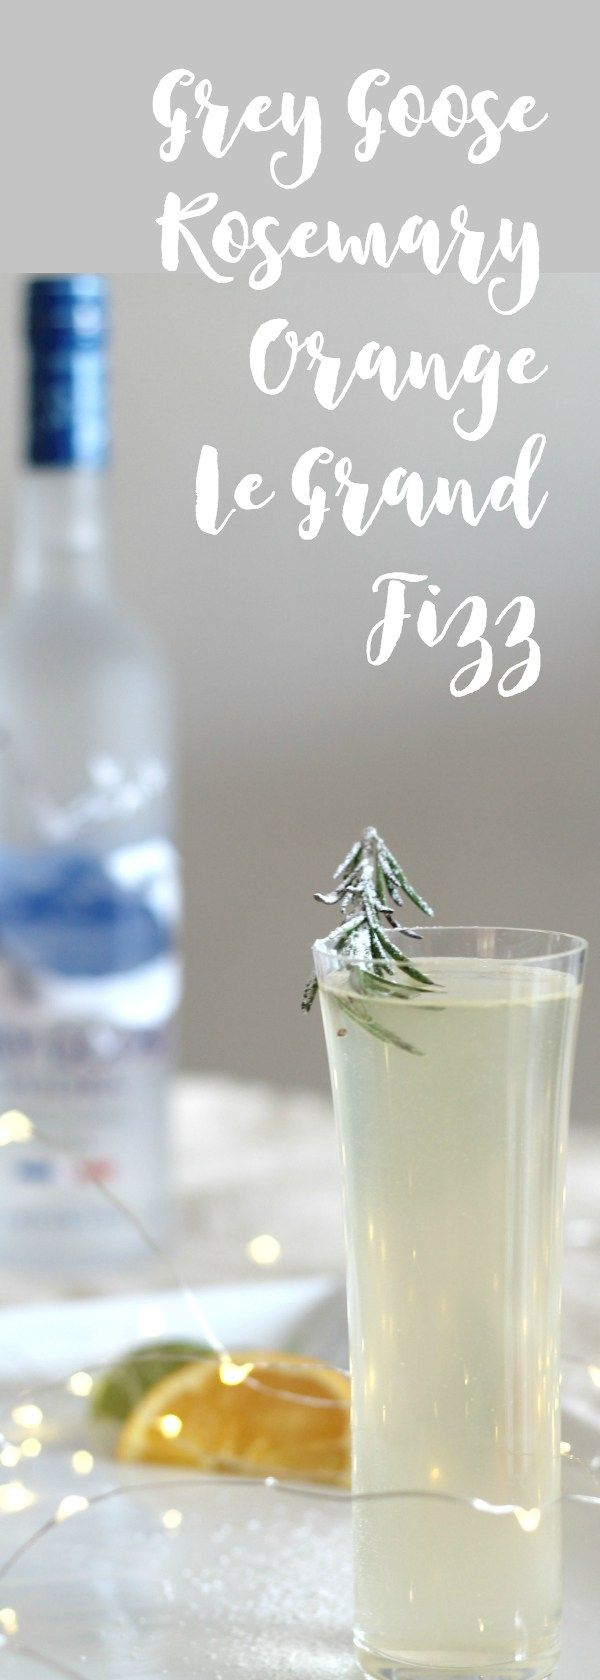 Msg 4 21 + Grey Goose Rosemary and Orange Le Grand Fizz Cocktail #GiftAndShare #cbias #ad